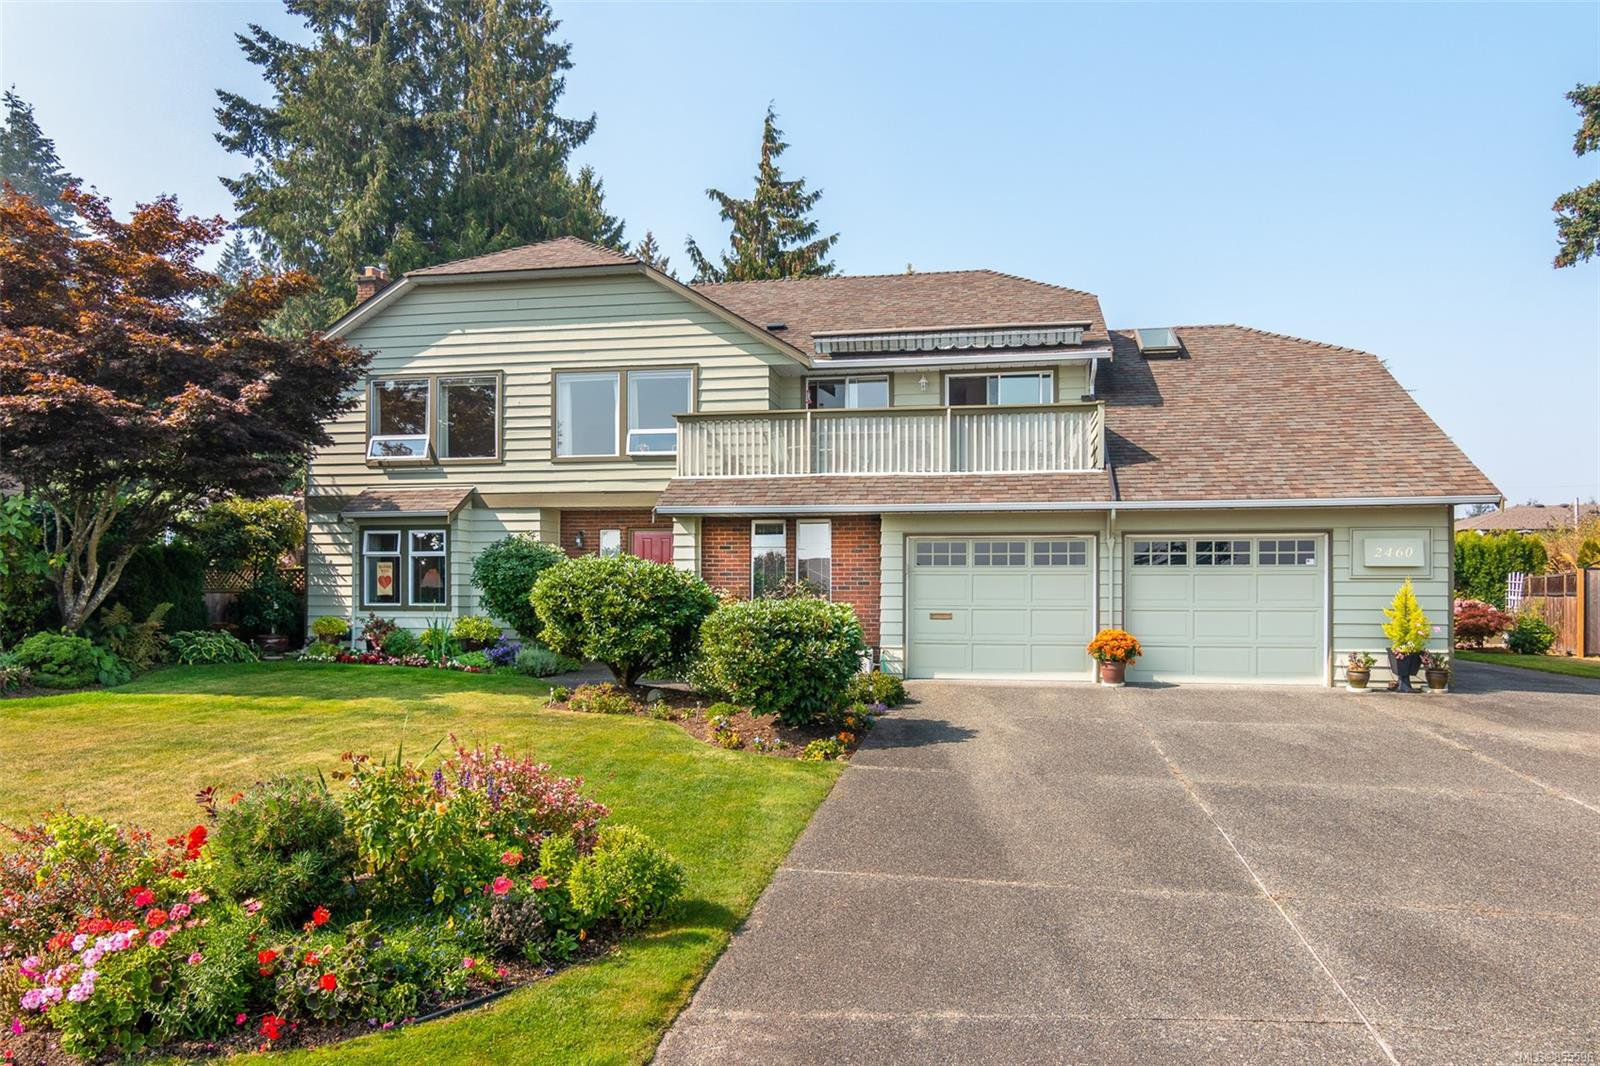 Main Photo: 2460 Costa Vista Pl in : CS Tanner Single Family Detached for sale (Central Saanich)  : MLS®# 855596